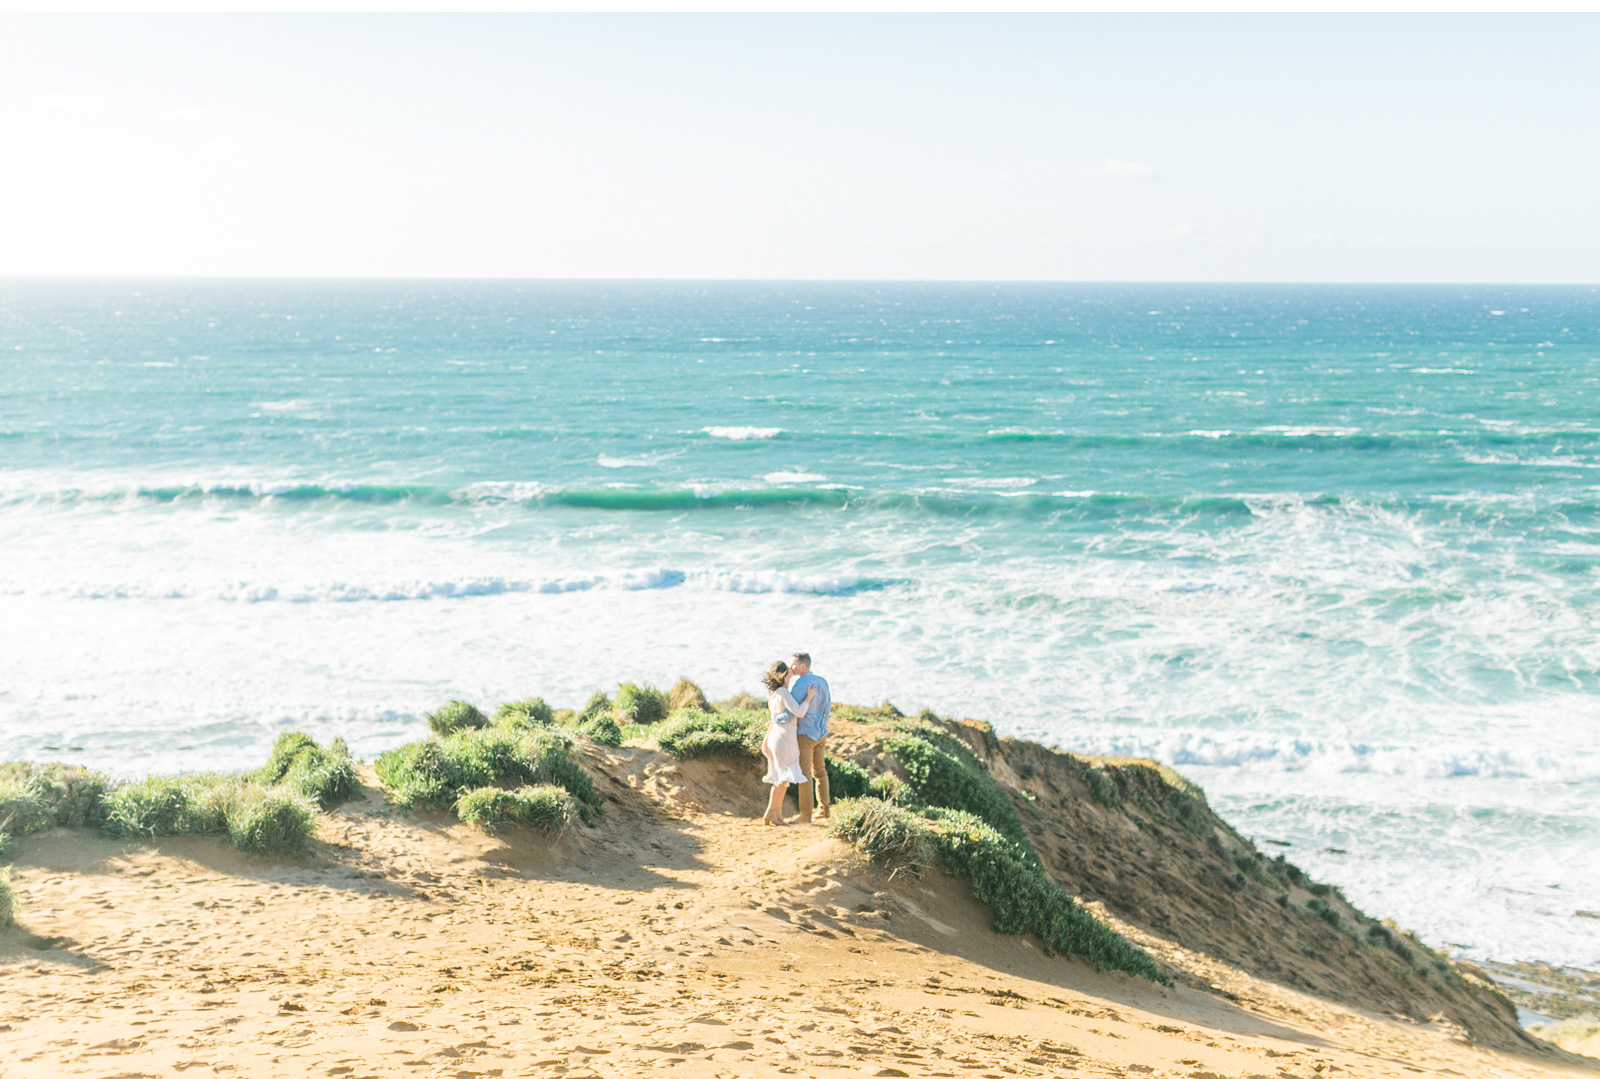 Professional-Wedding-Photographer-Southern-California-Weddings-Malibu-Engagement-Natalie-Schutt-Photography-Style-Me-Pretty-Beachside-Engagement_06.jpg